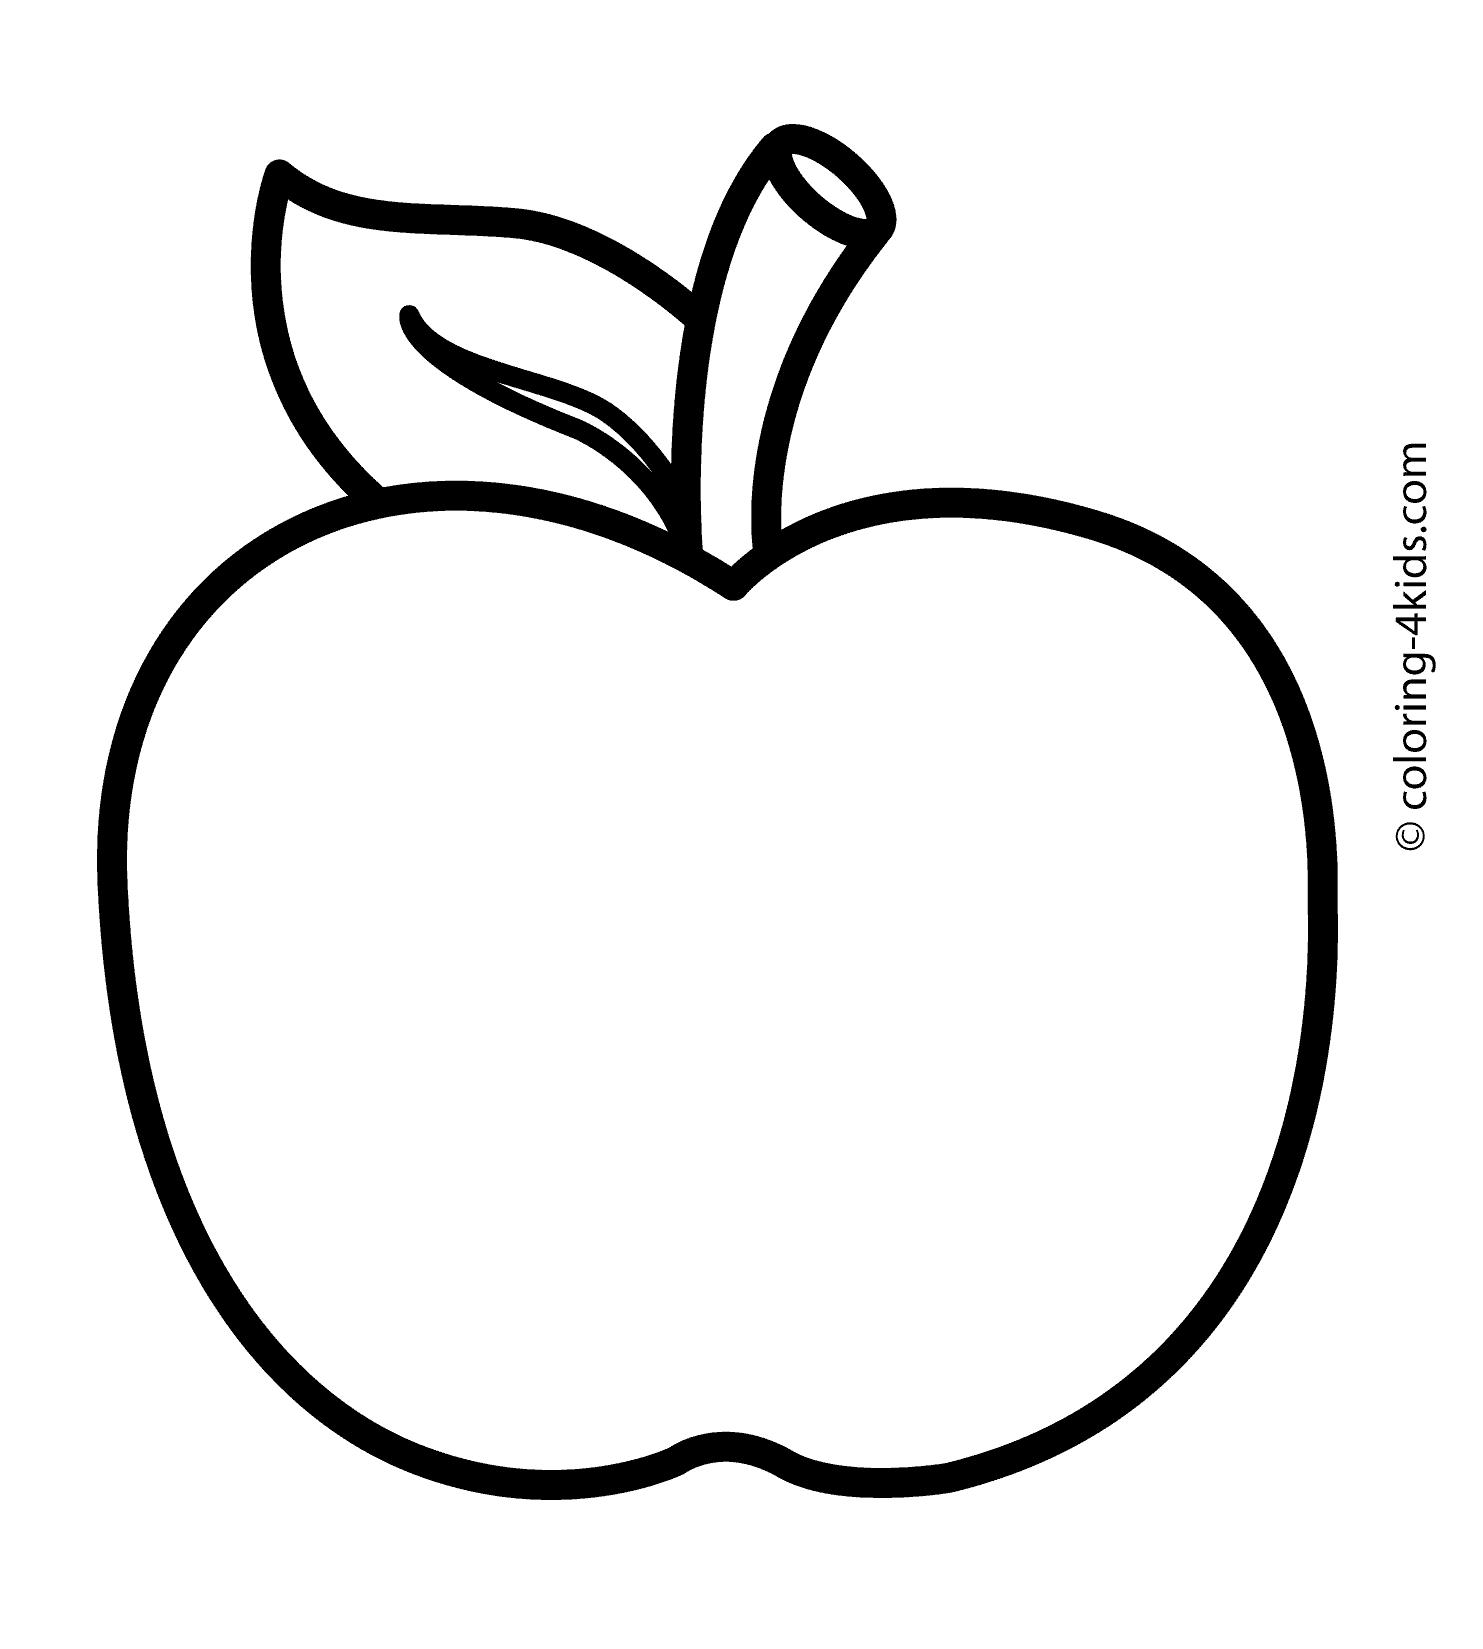 a apple coloring sheet top 30 apple coloring pages for your little ones coloring apple sheet a